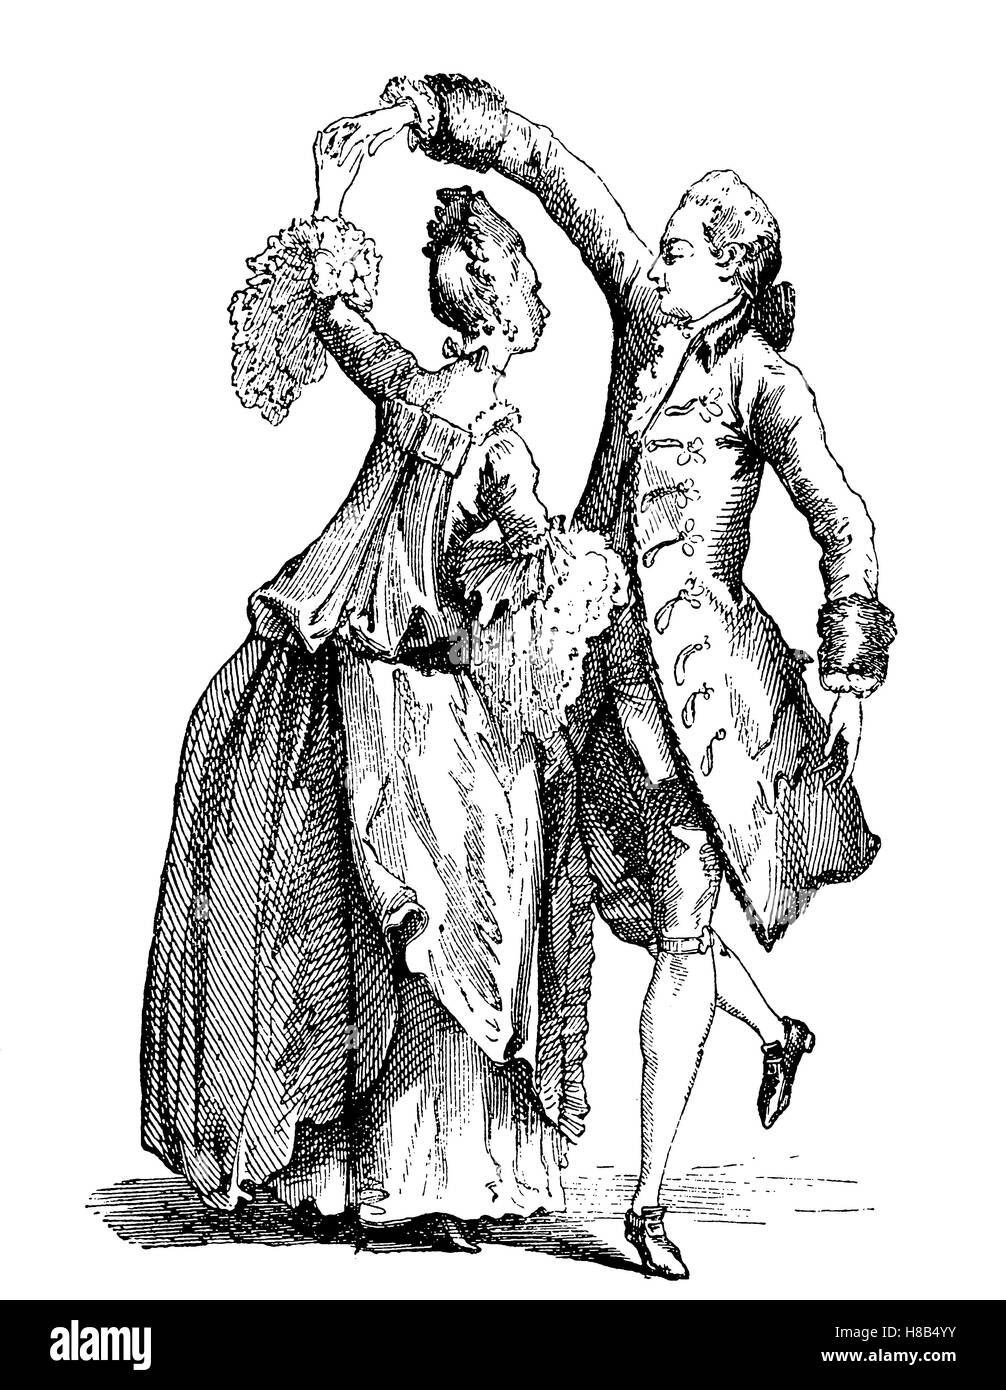 man's and woman's costume in the year 1762, dancing couple, france, History of fashion, costume story - Stock Image